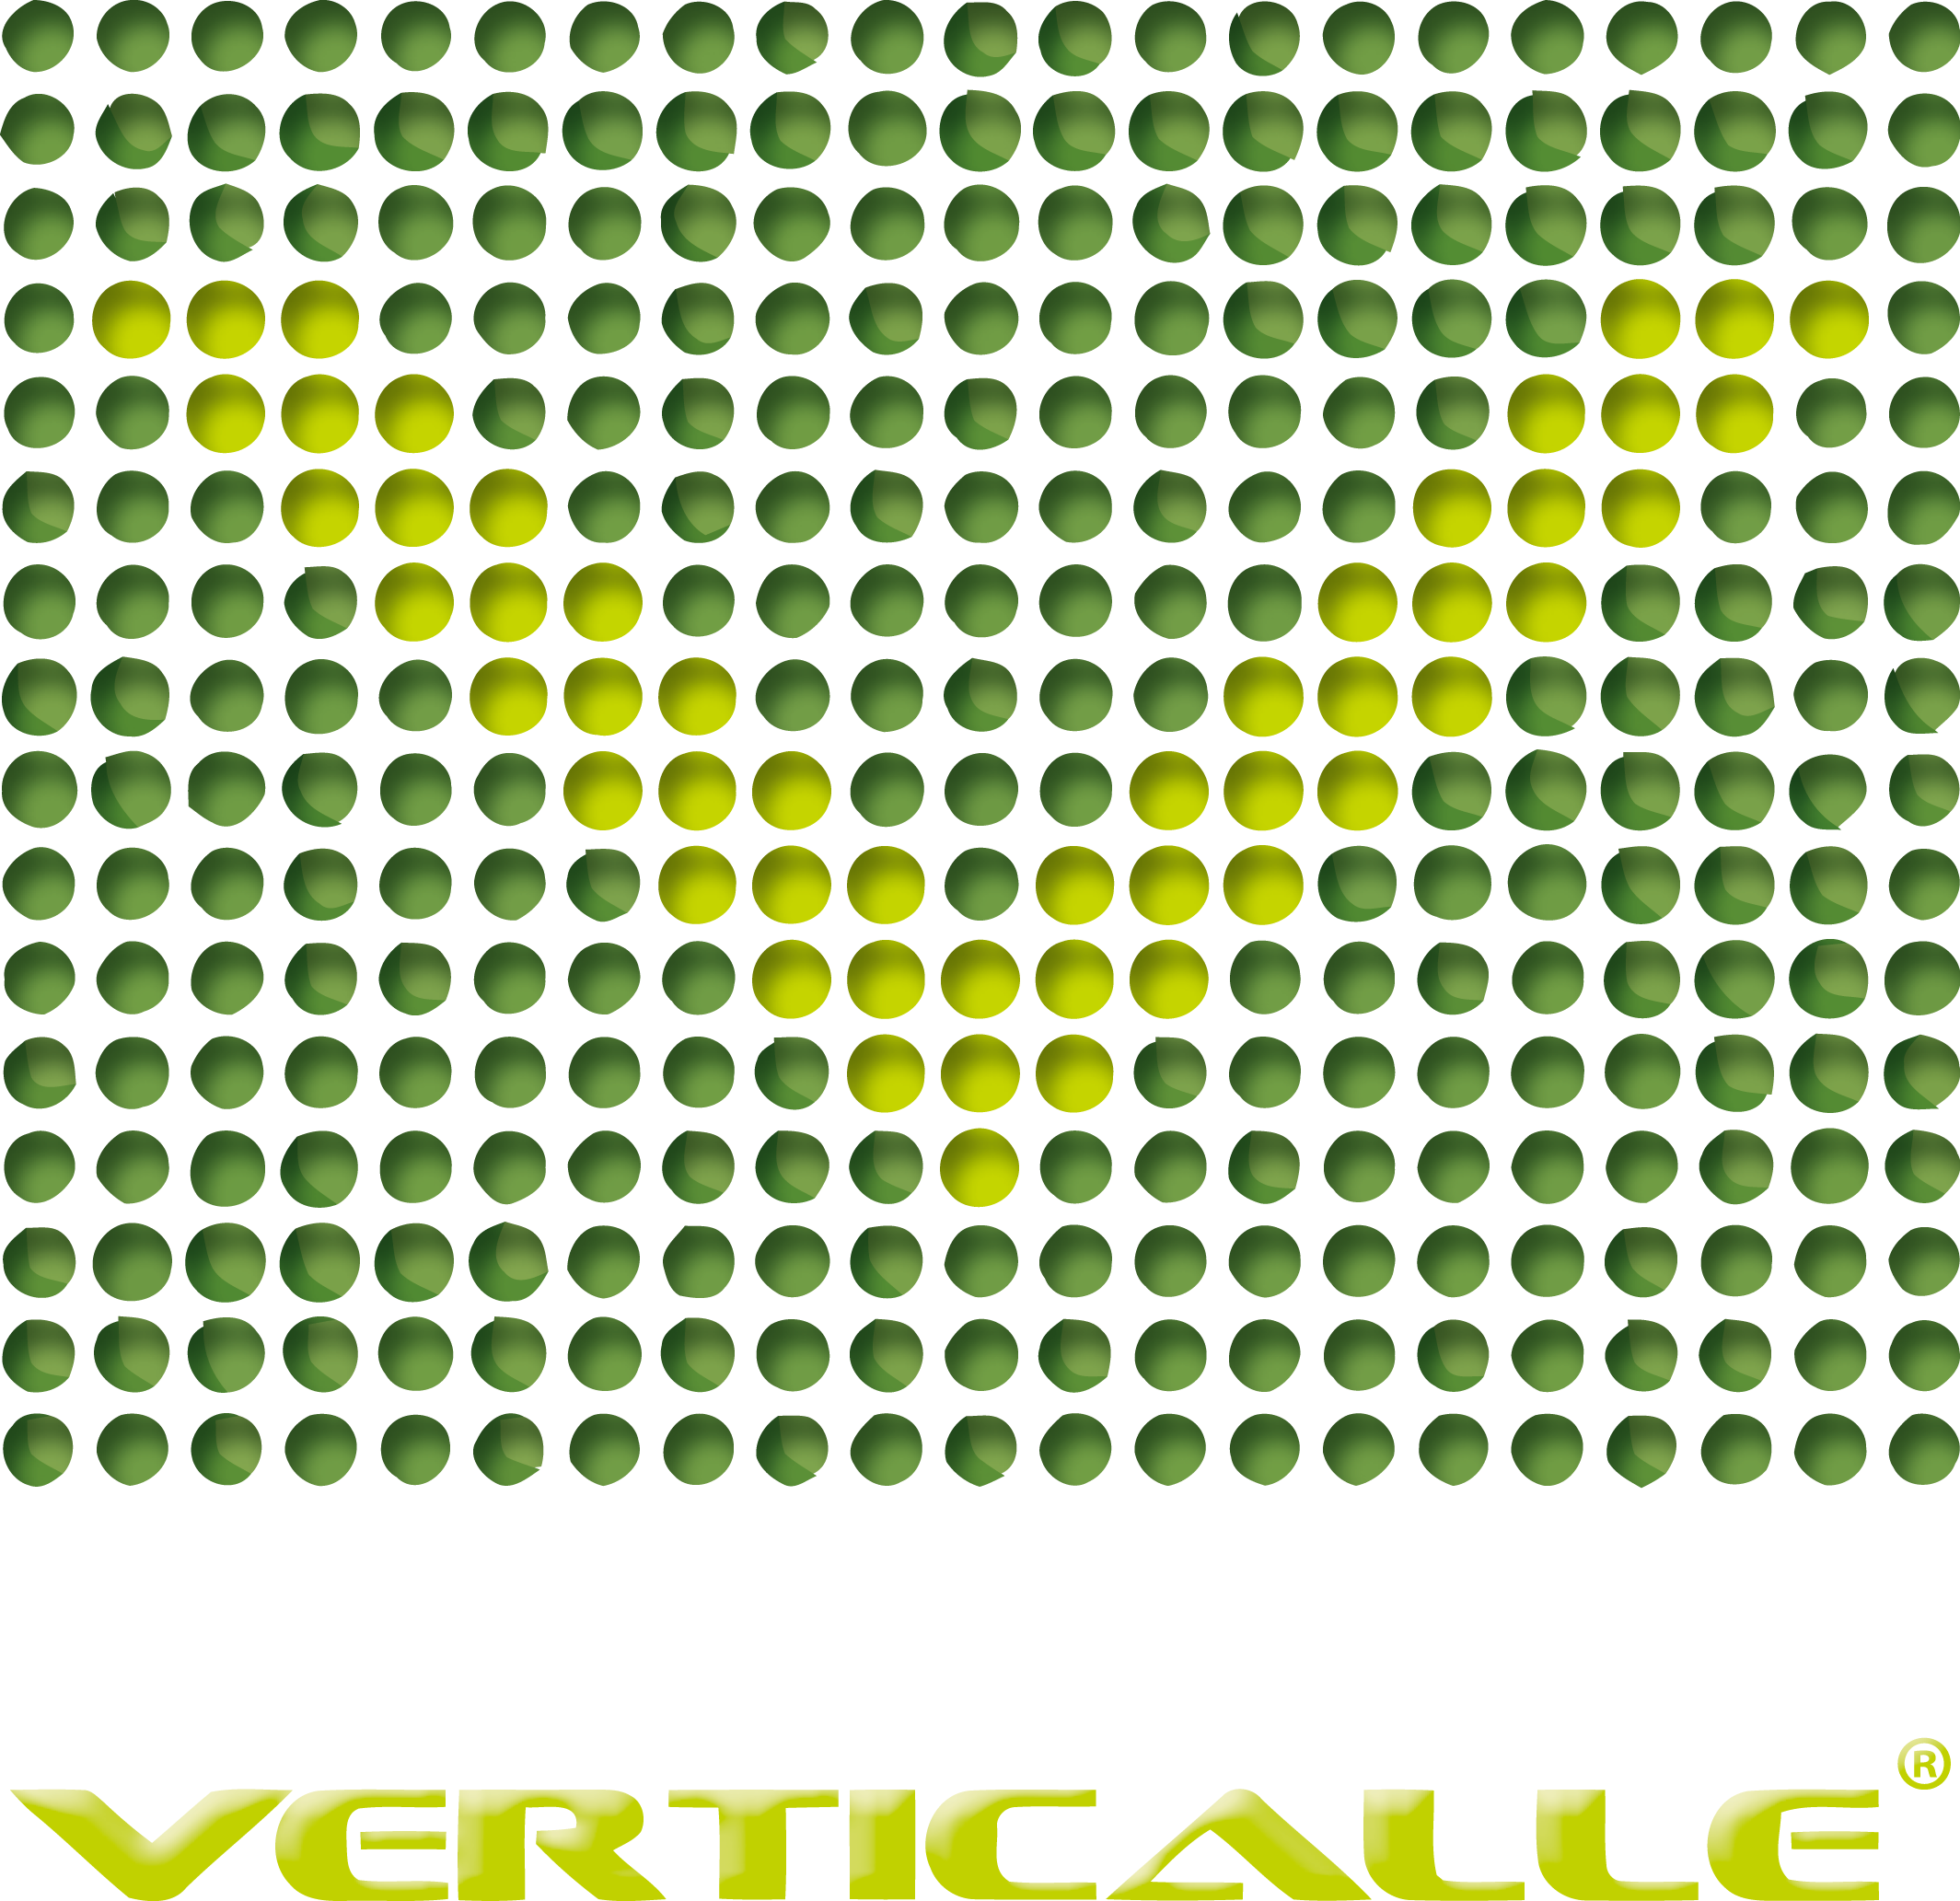 Verticalle.com - Turkey's Vertical Garden Expert